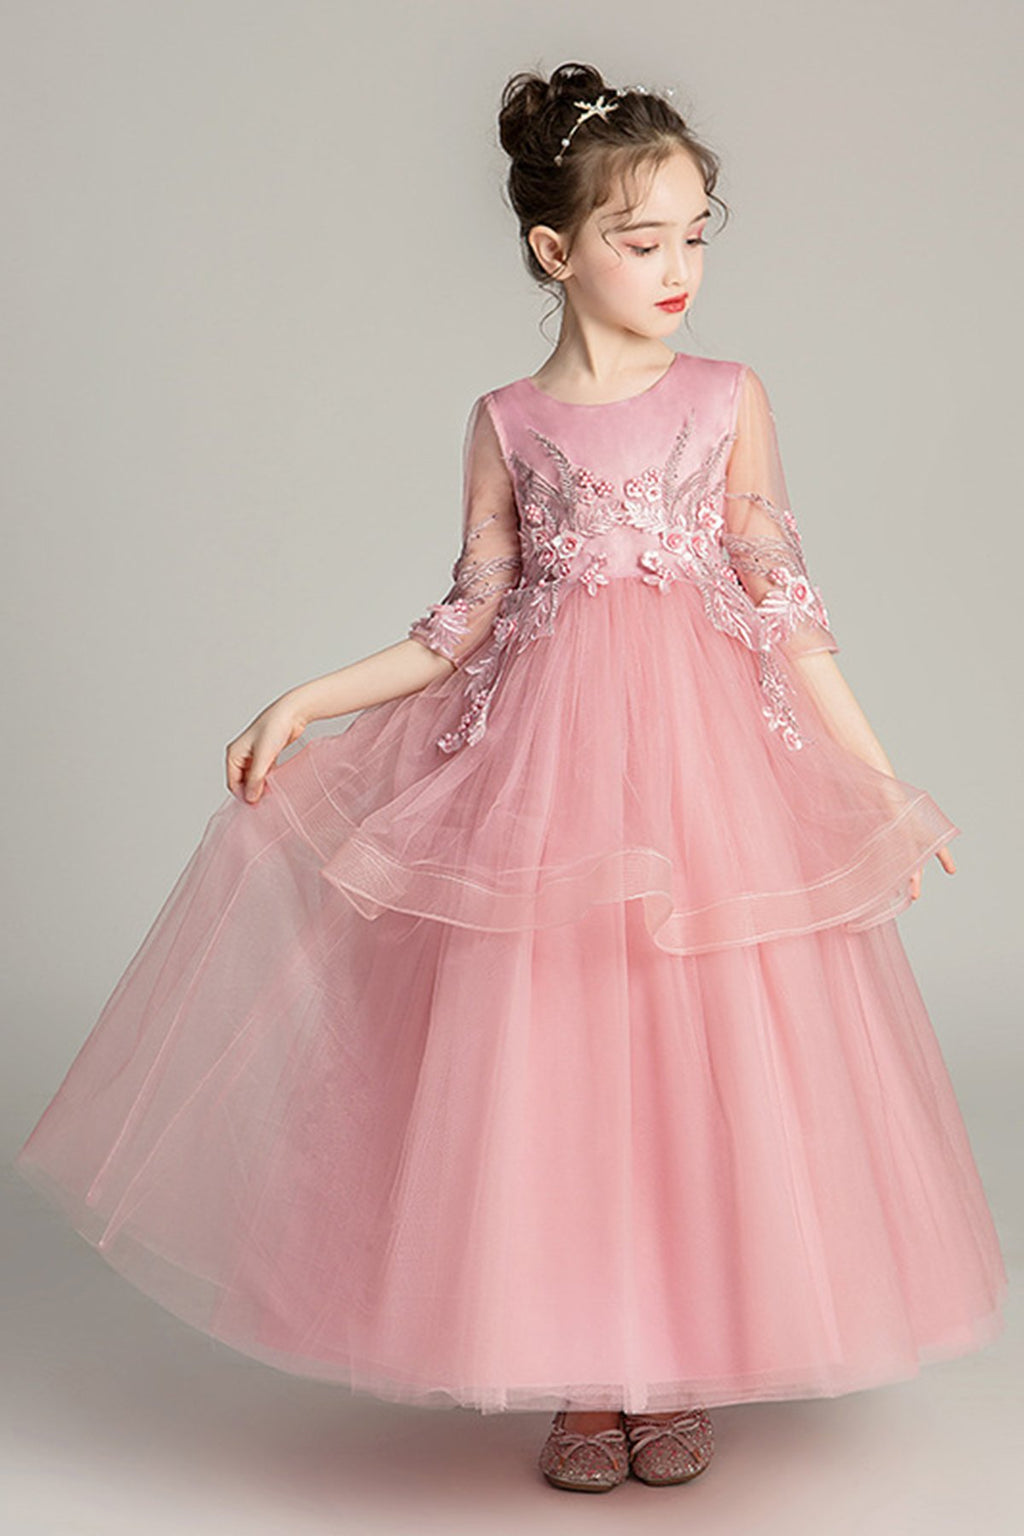 Sweet Princess Dress Flower Girl Dress Flower Girl Dresses 120cm Pink